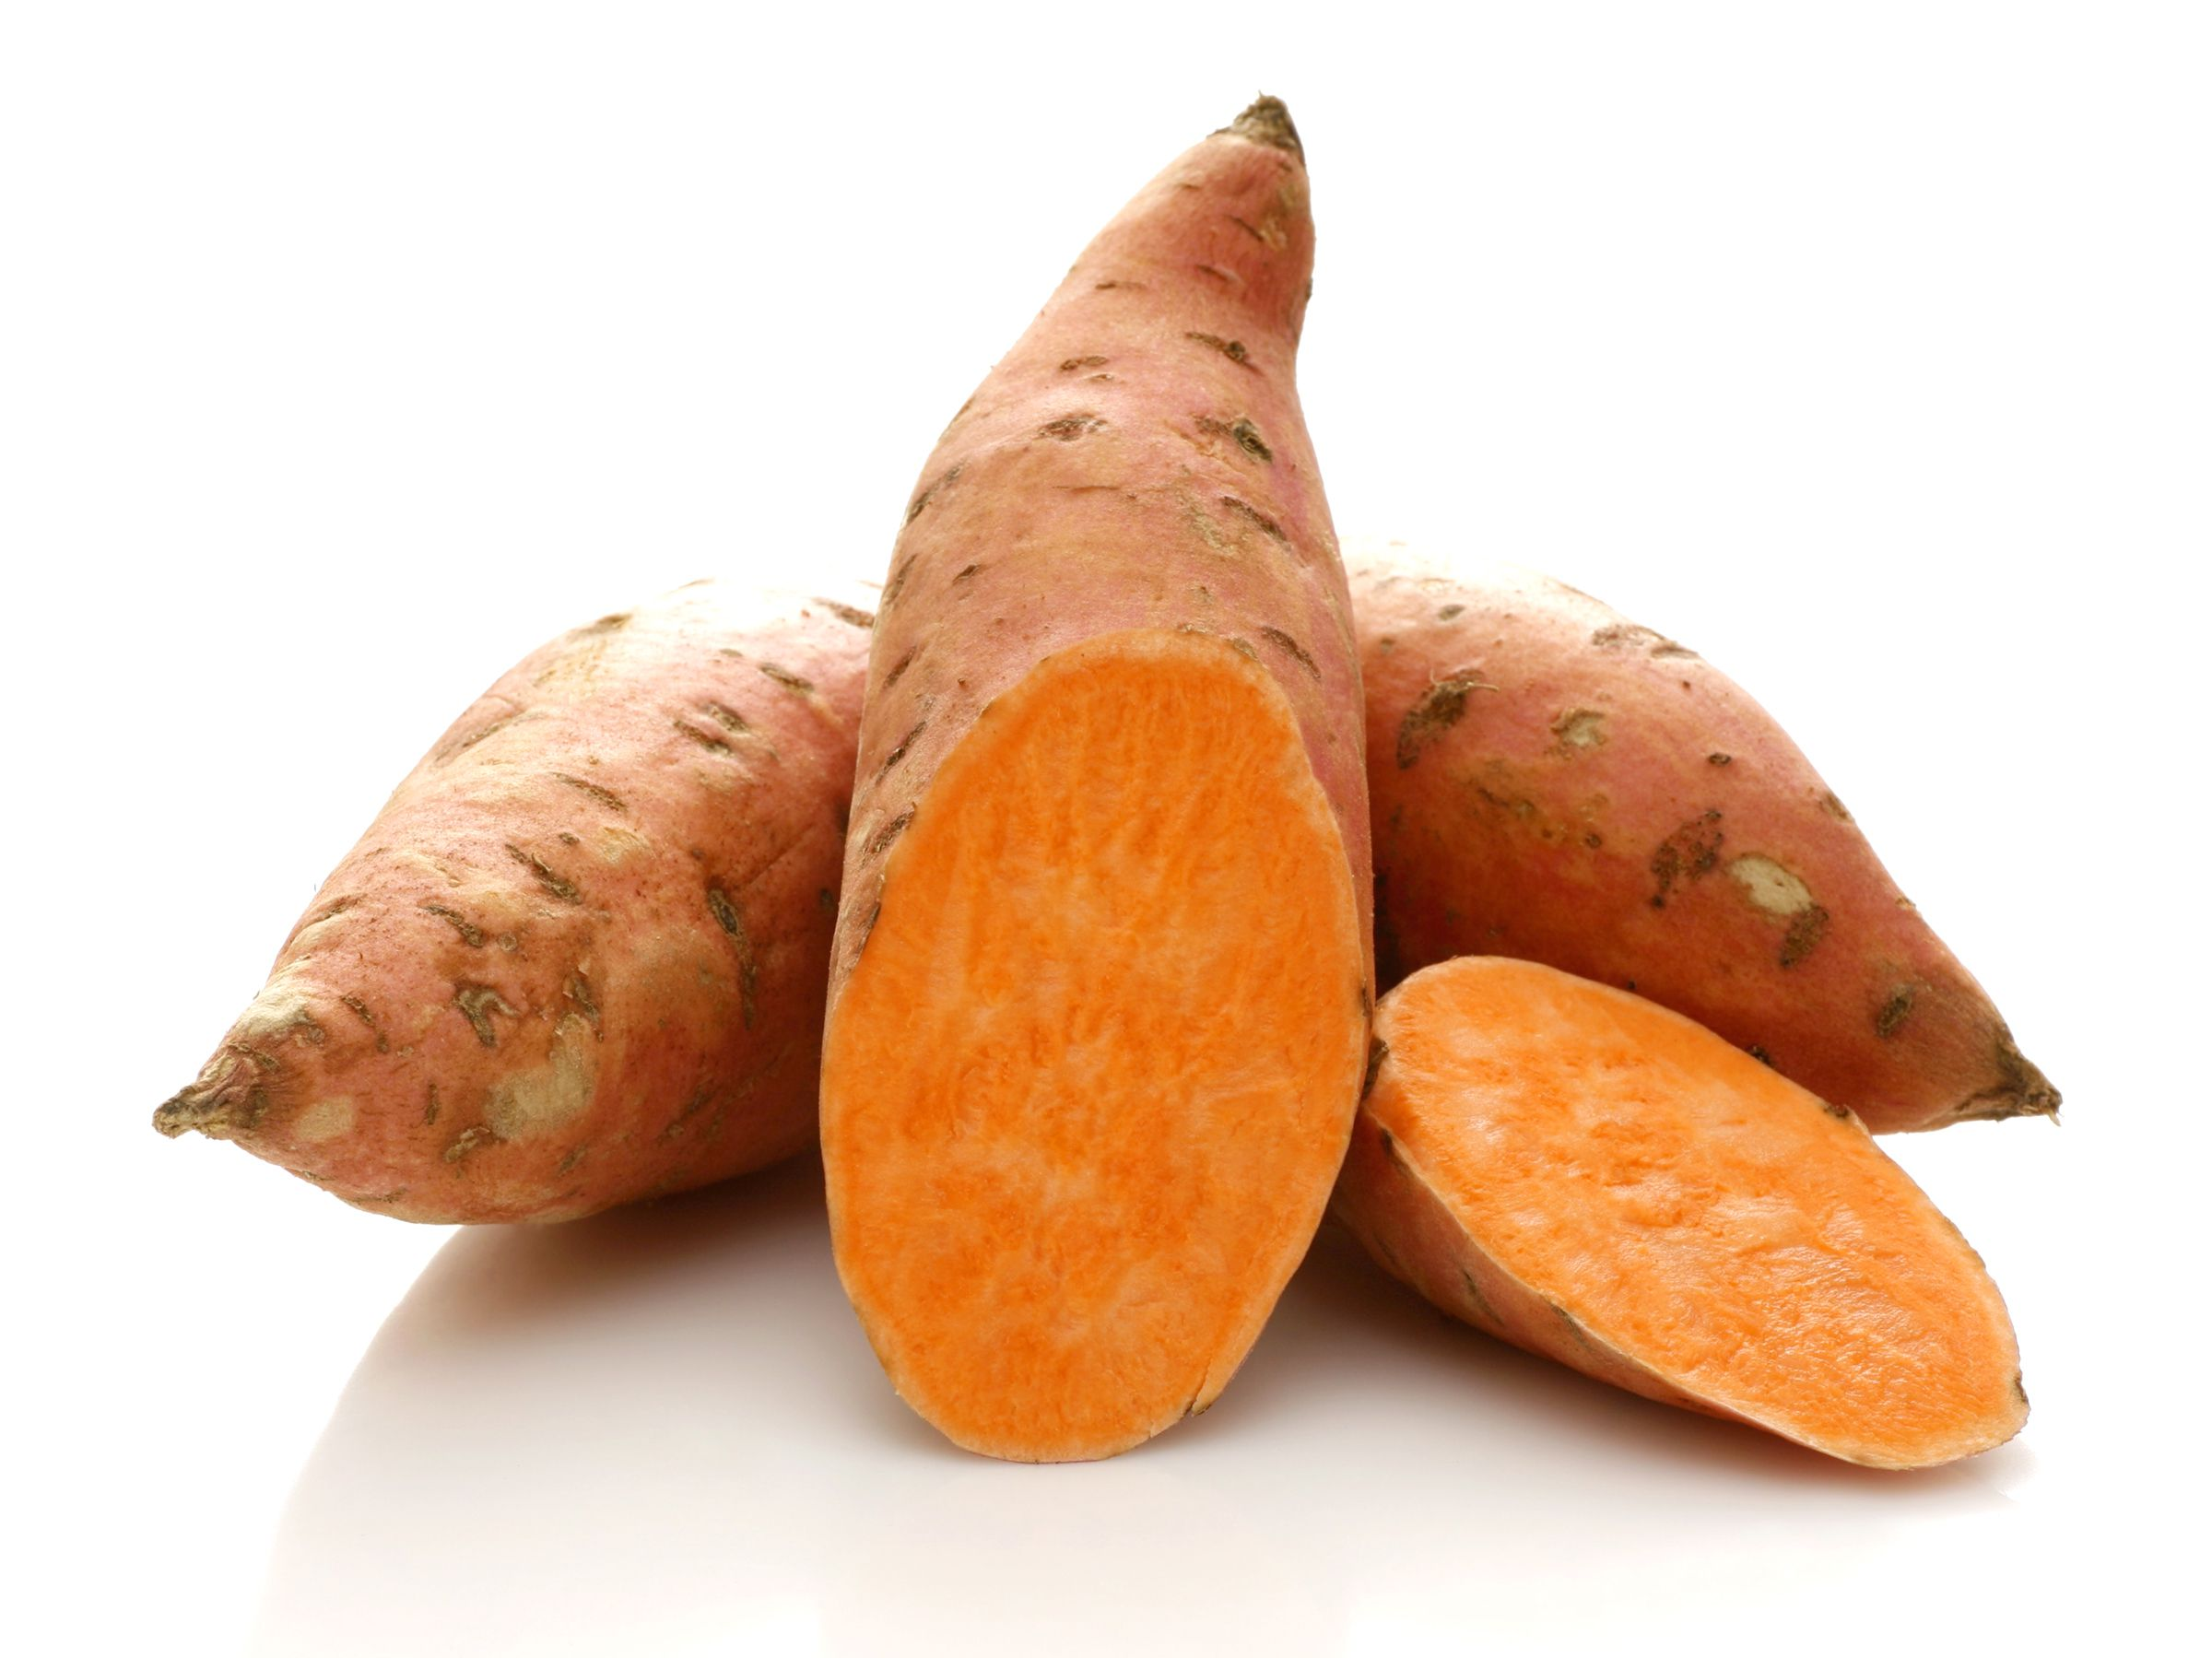 sweetpotatoes_getty2400-56a4975c5f9b58b7d0d7b790.jpg